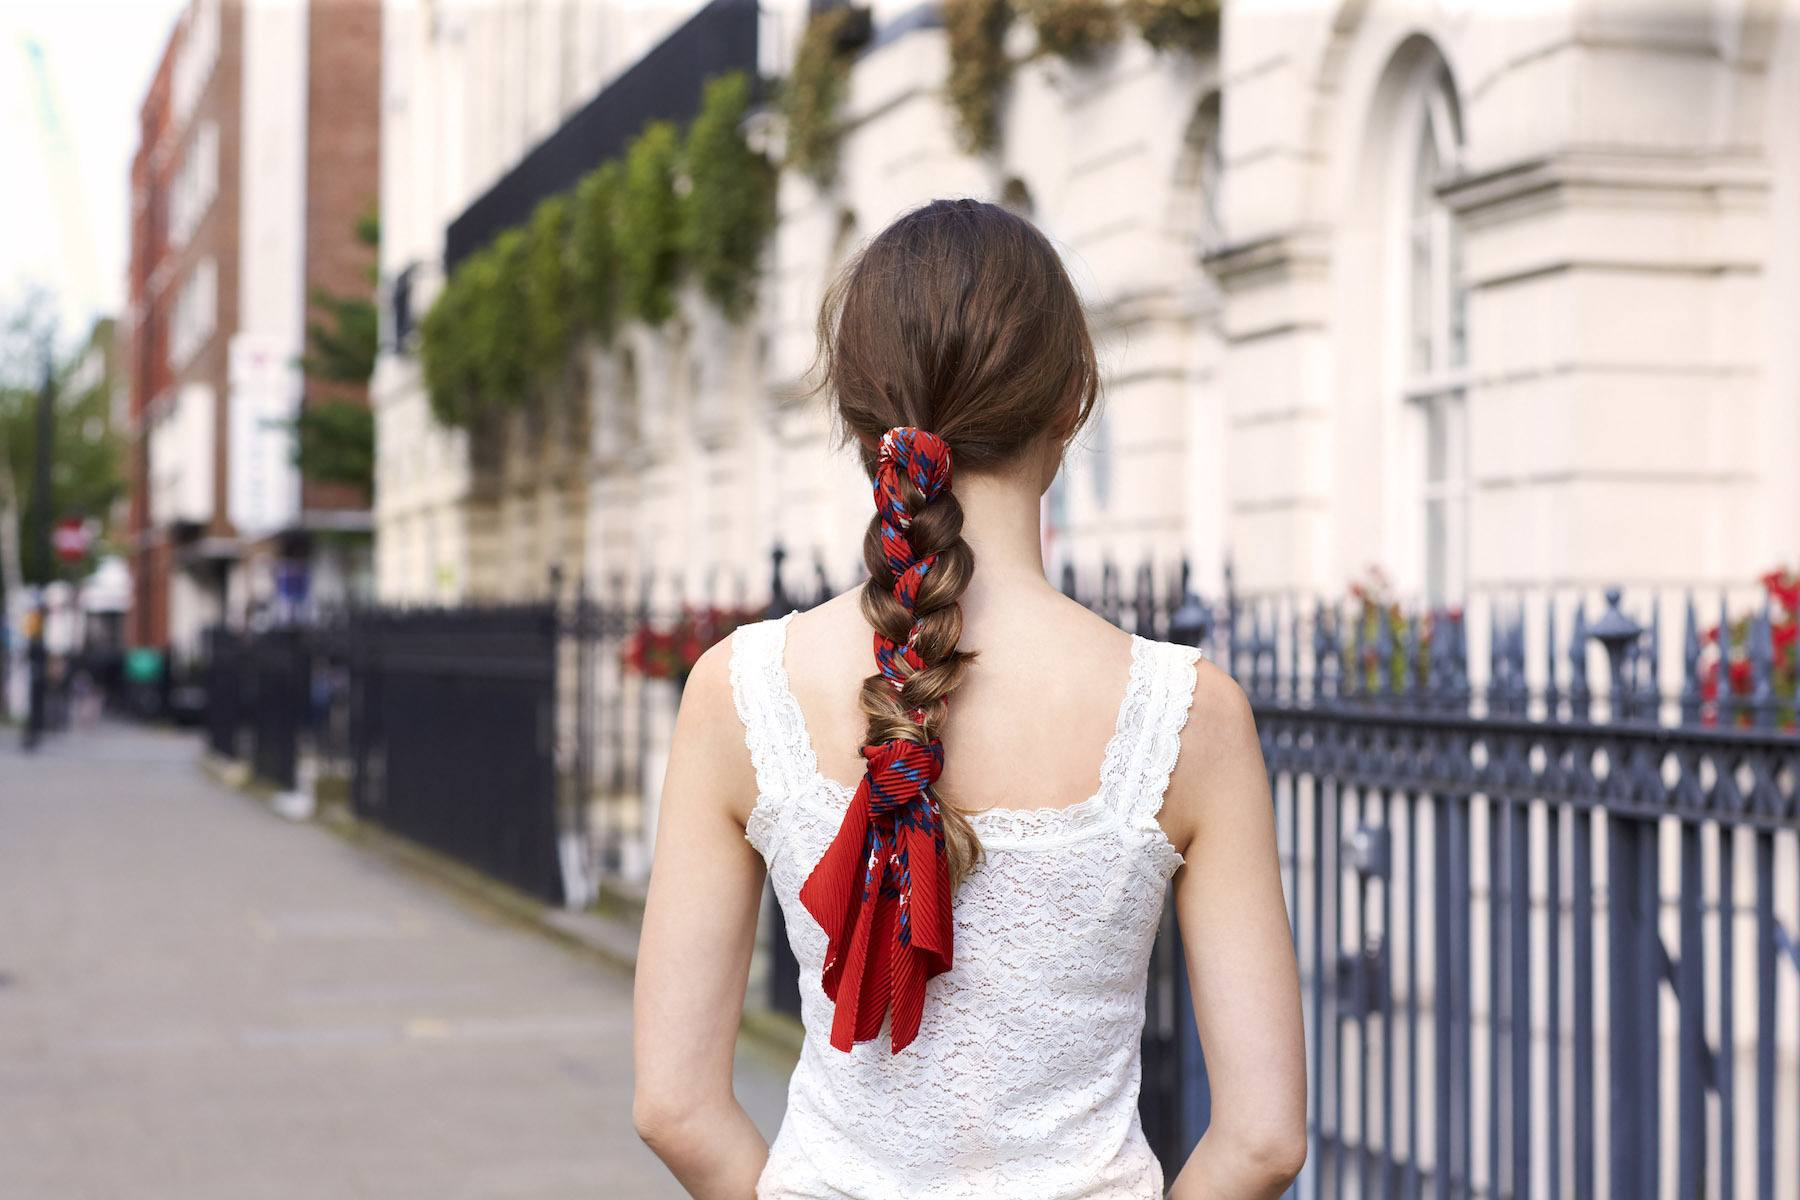 Casual hairstyle: Back shot of a woman with long dark brown hair in scarf braid wearing a white top outdoors